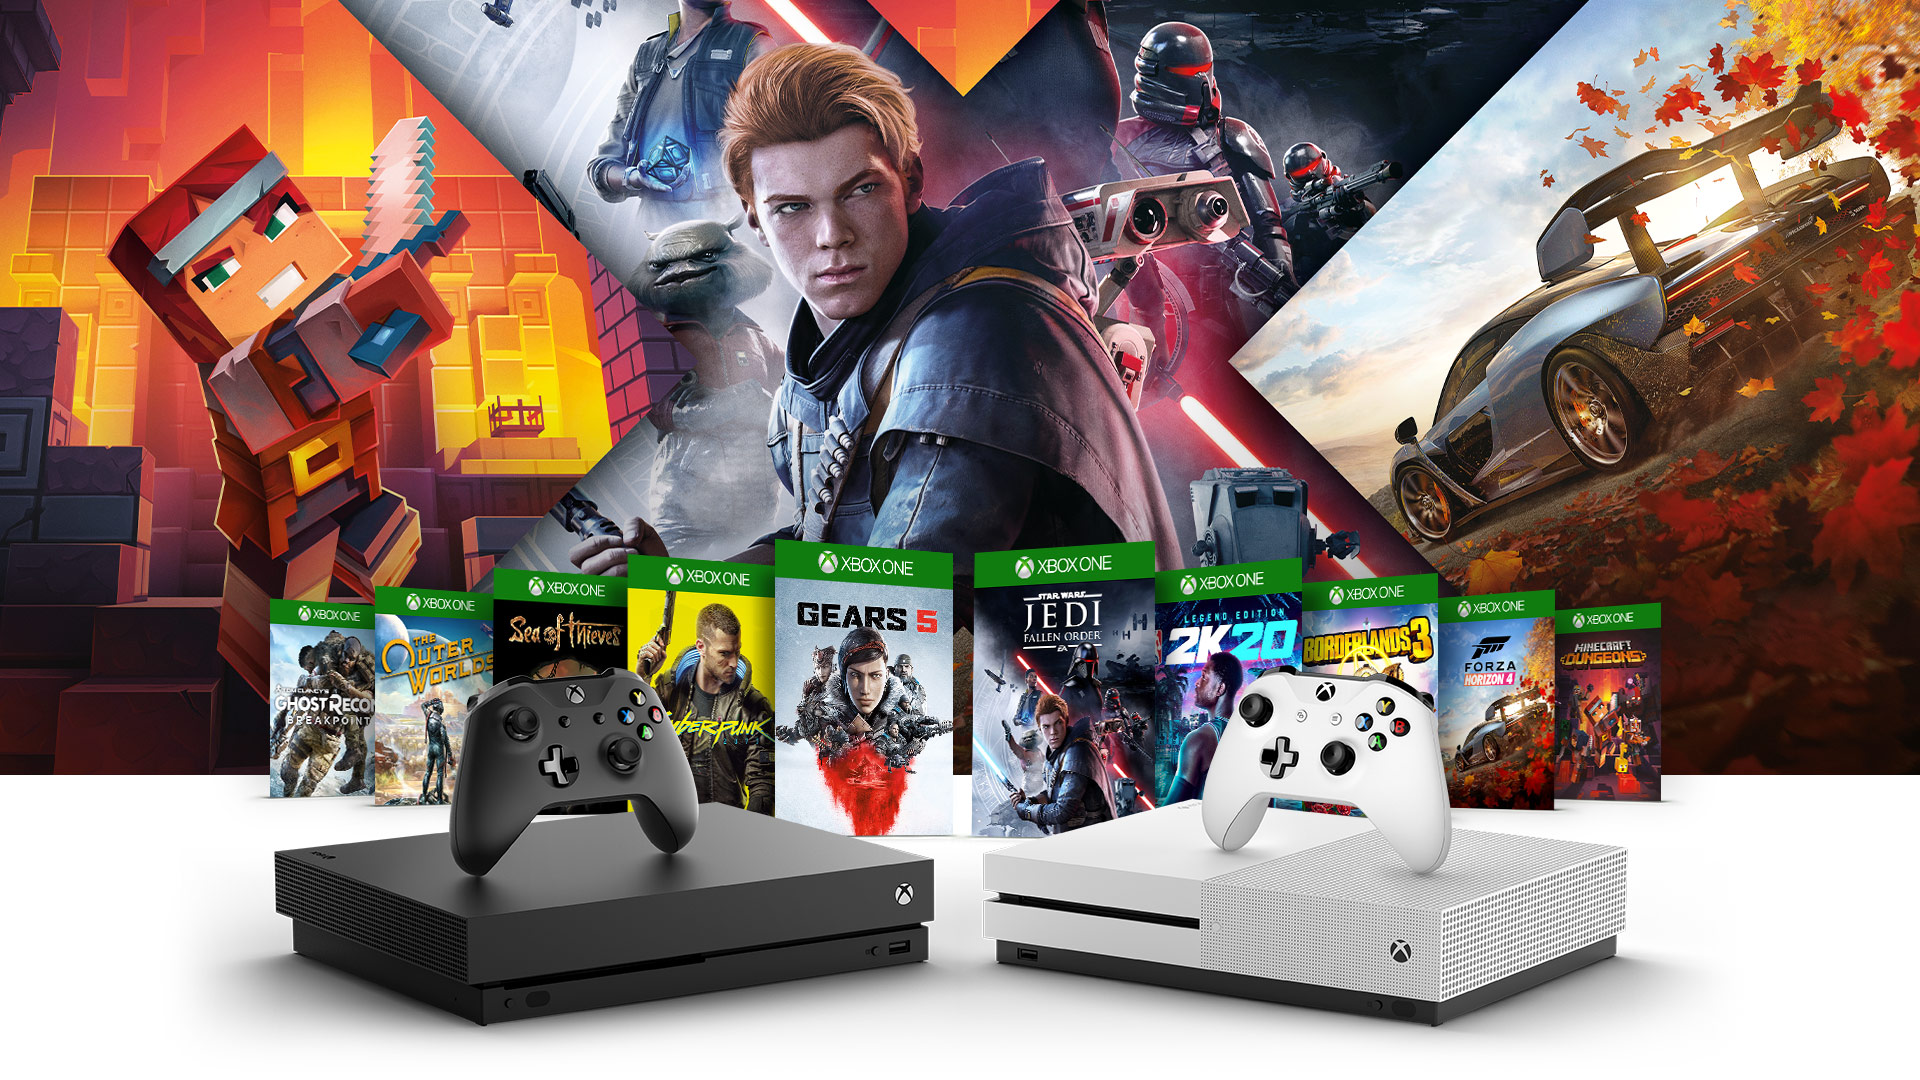 Xbox One X and Xbox One S and box art for Gears 5, Star Wars Jedi fallen order, Cyberpunk 2077 and other games